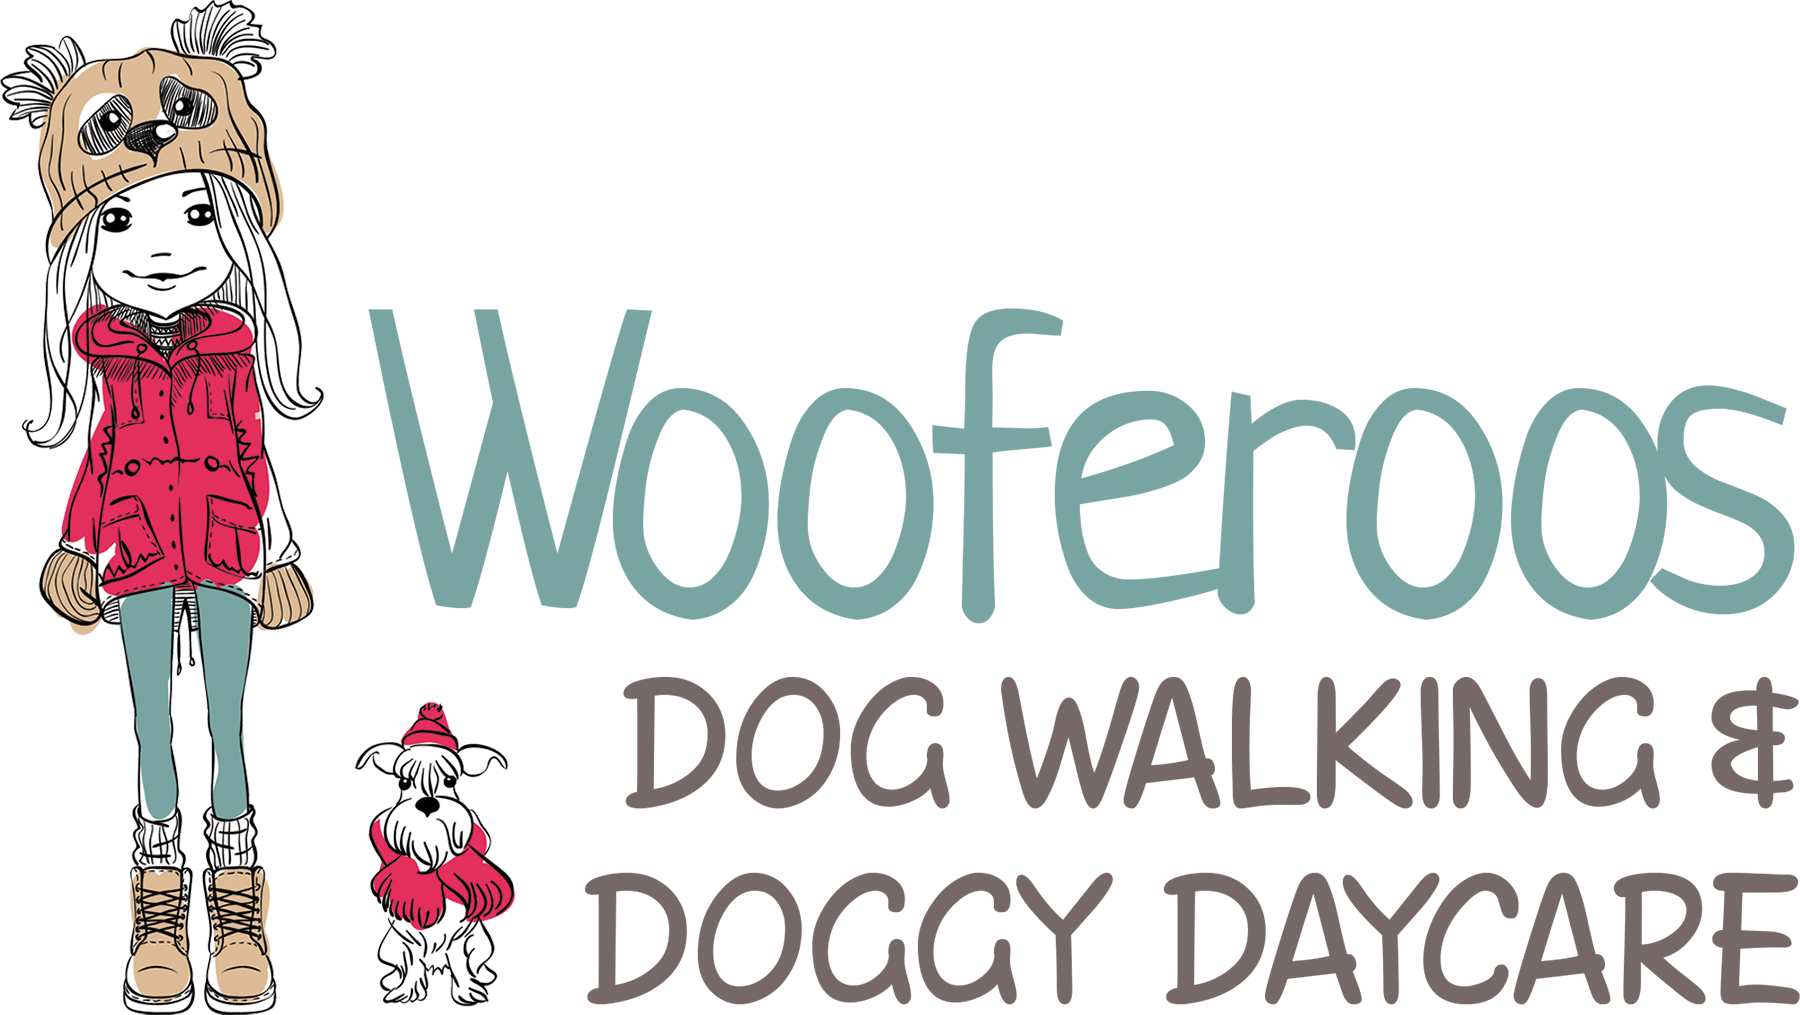 Dog care clipart clipart royalty free library WOOFEROOS DOG WALKER clipart royalty free library